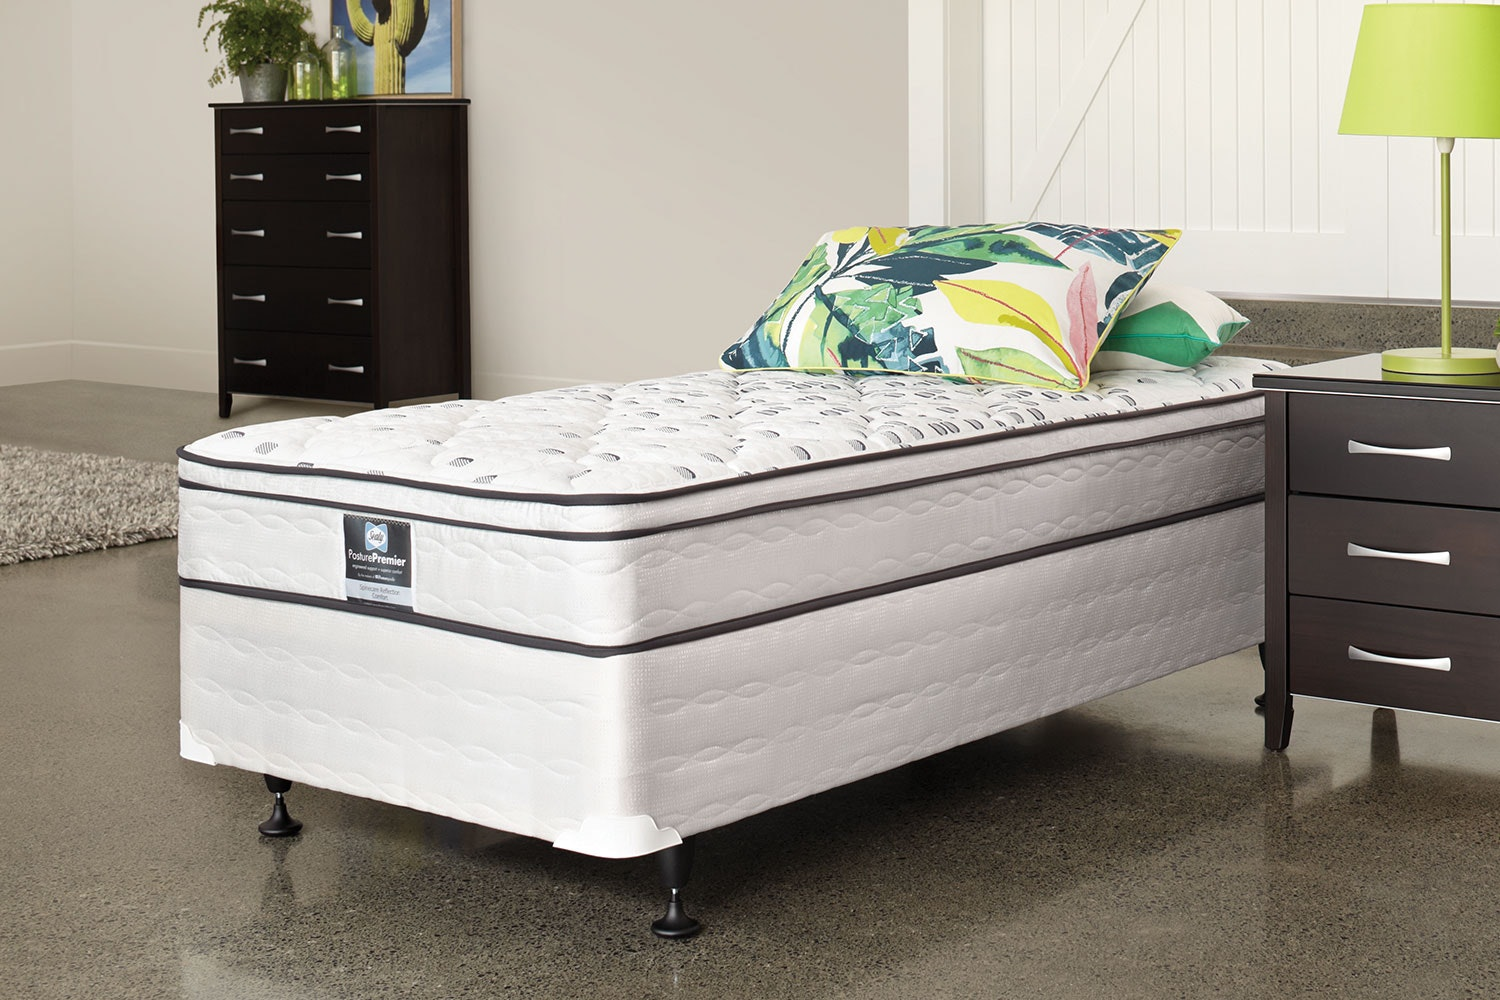 Spinecare Reflection Comfort Single Bed by Sealy